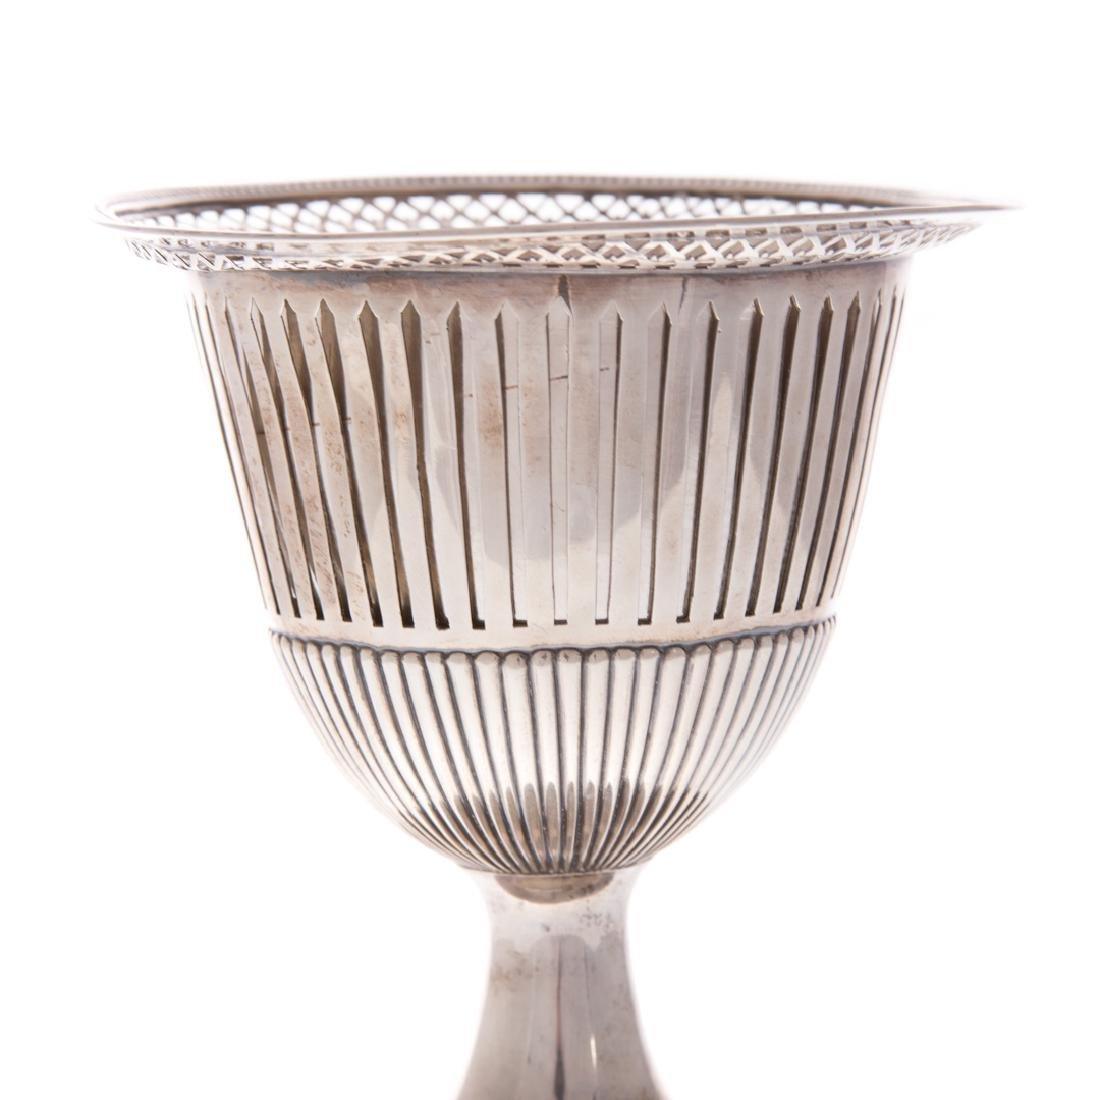 Dutch reticulated silver chalice - 2